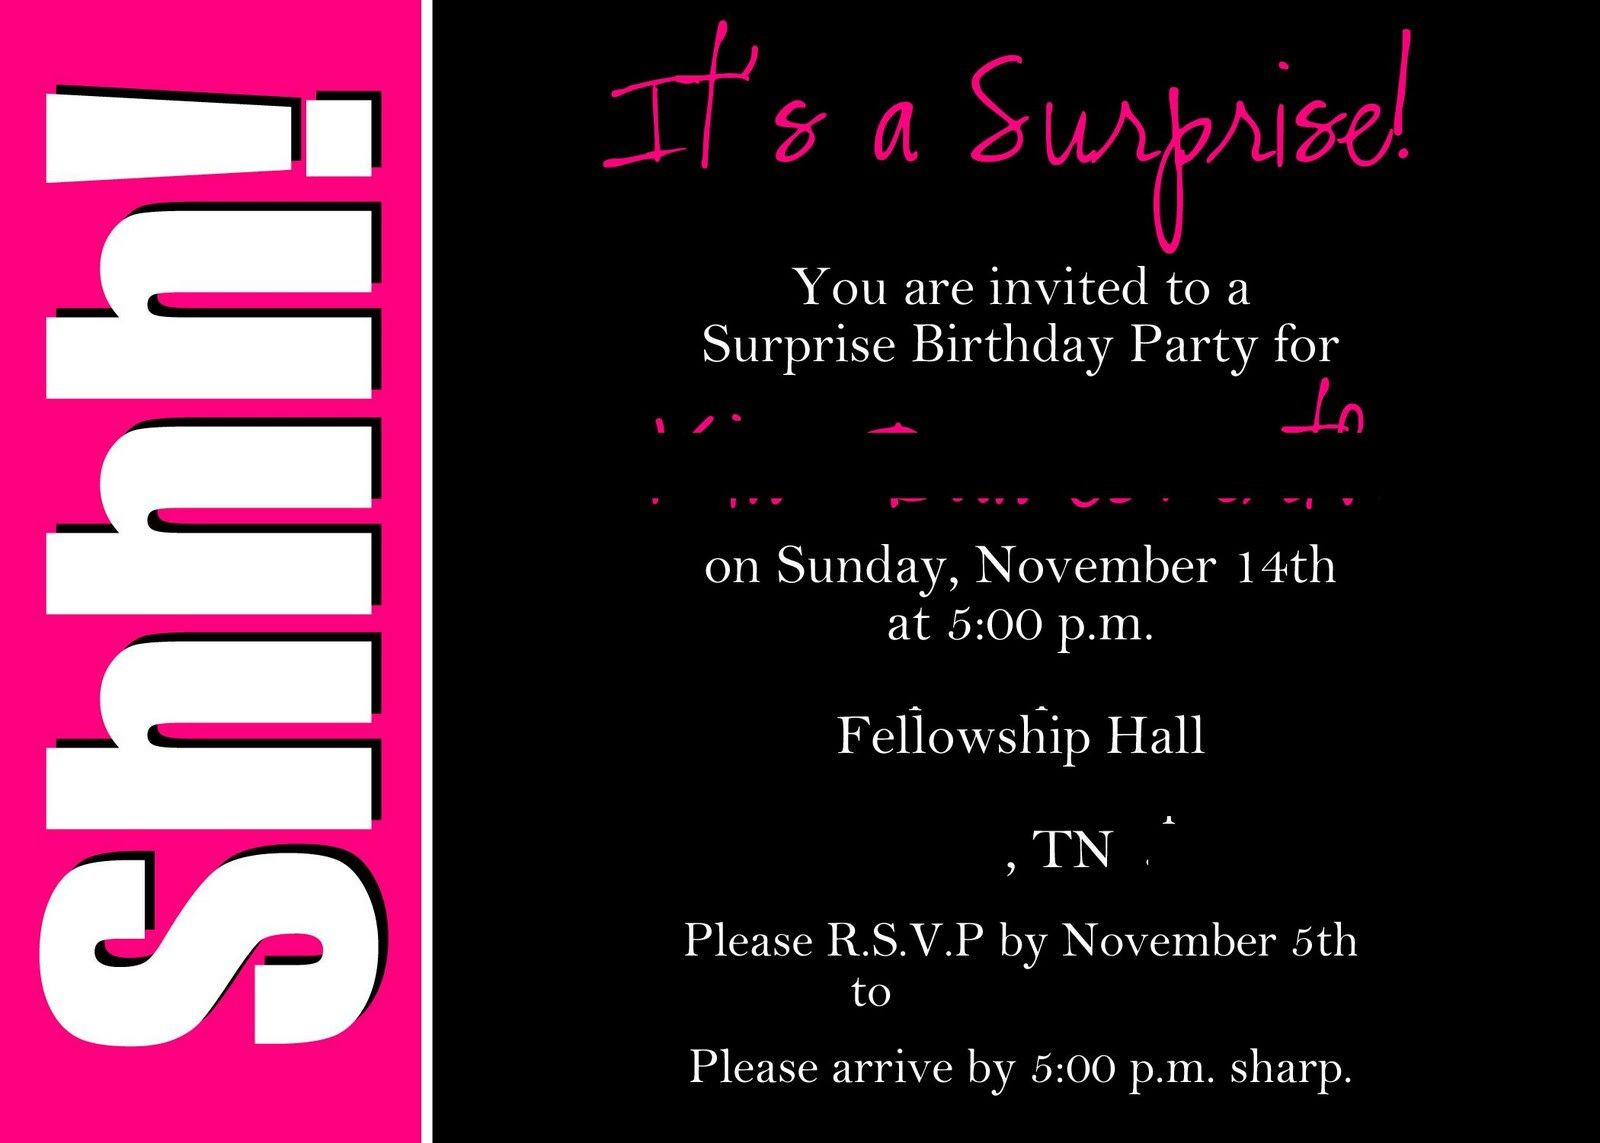 40th Surprise Birthday Party Invitations | Party invitations, 40th ...